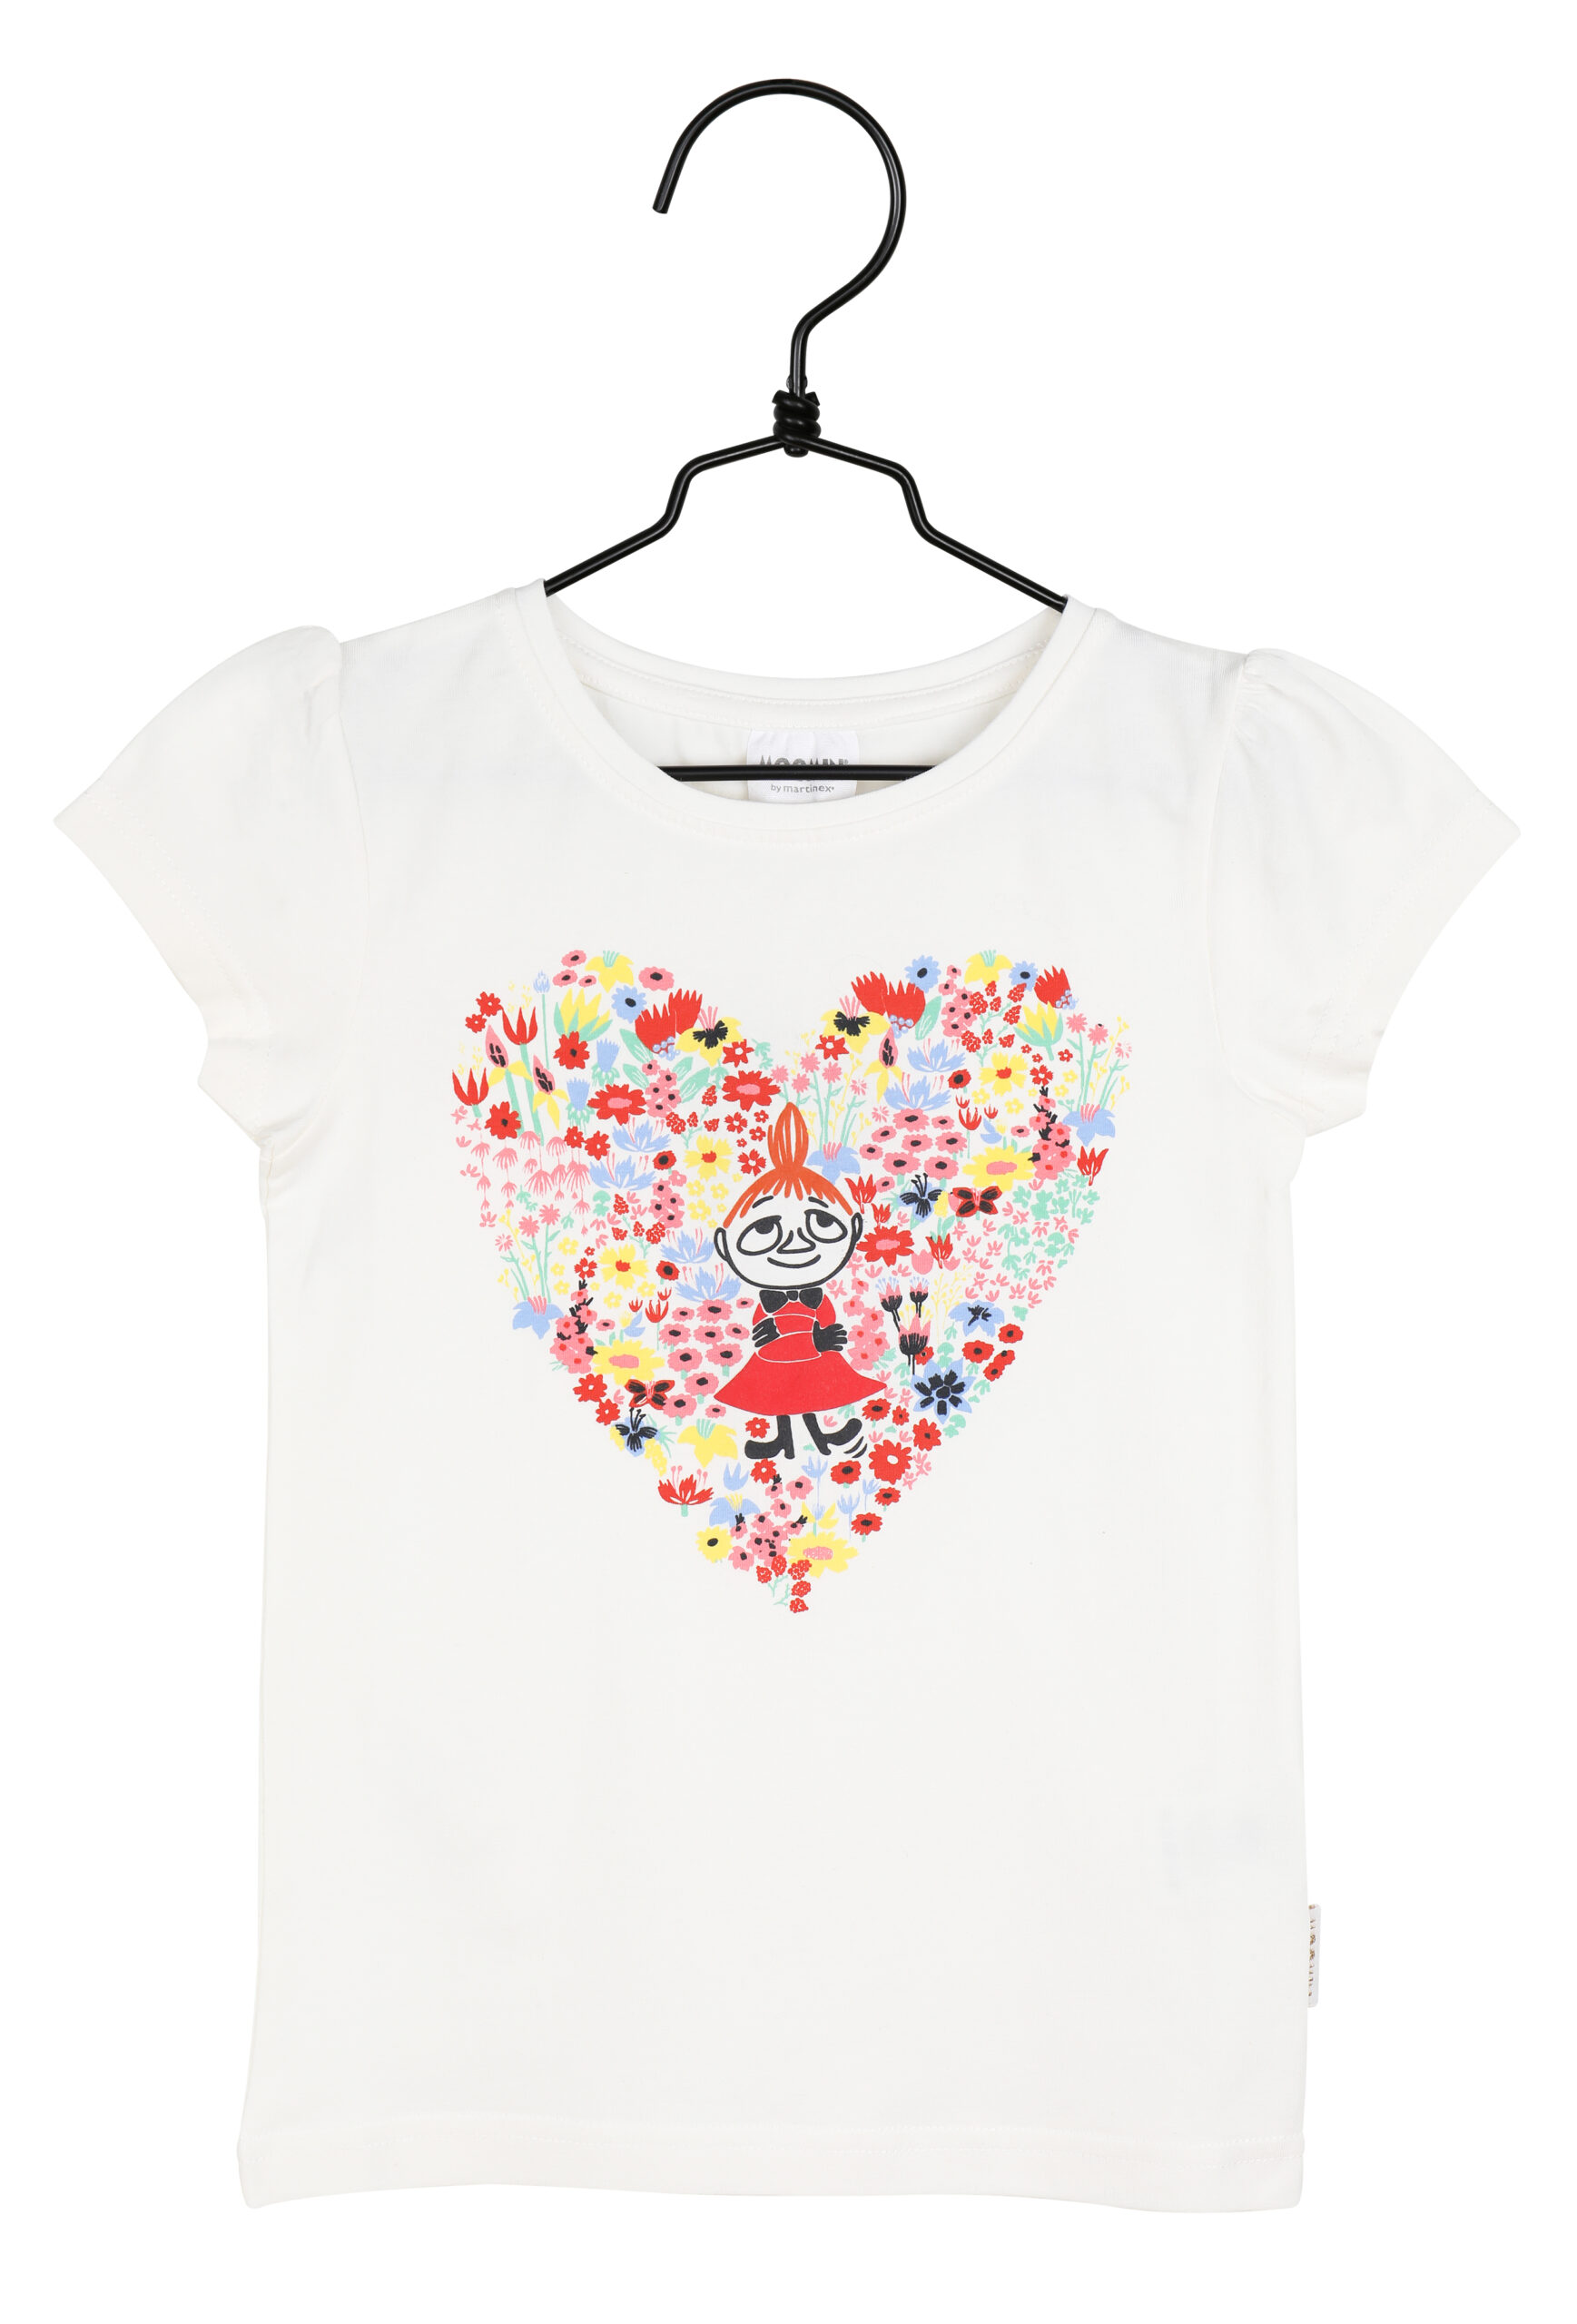 Martinex Moomin Little My T-Shirt Off-White